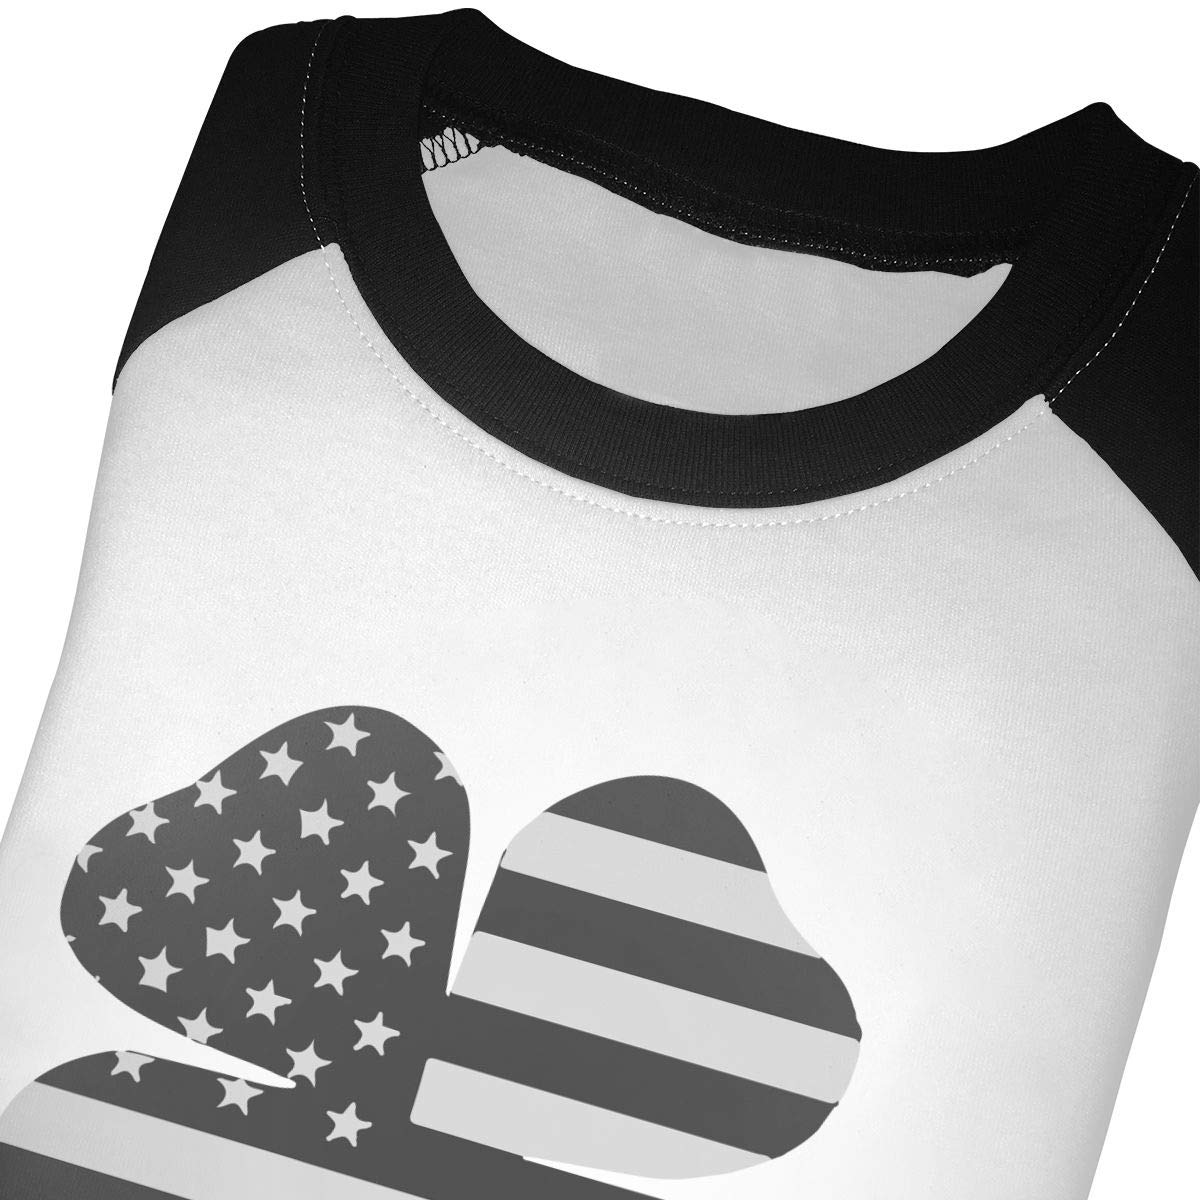 Clover Black American Flag Unisex 100/% Cotton Childrens 3//4 Sleeves T-Shirt Top Tees 2T~5//6T